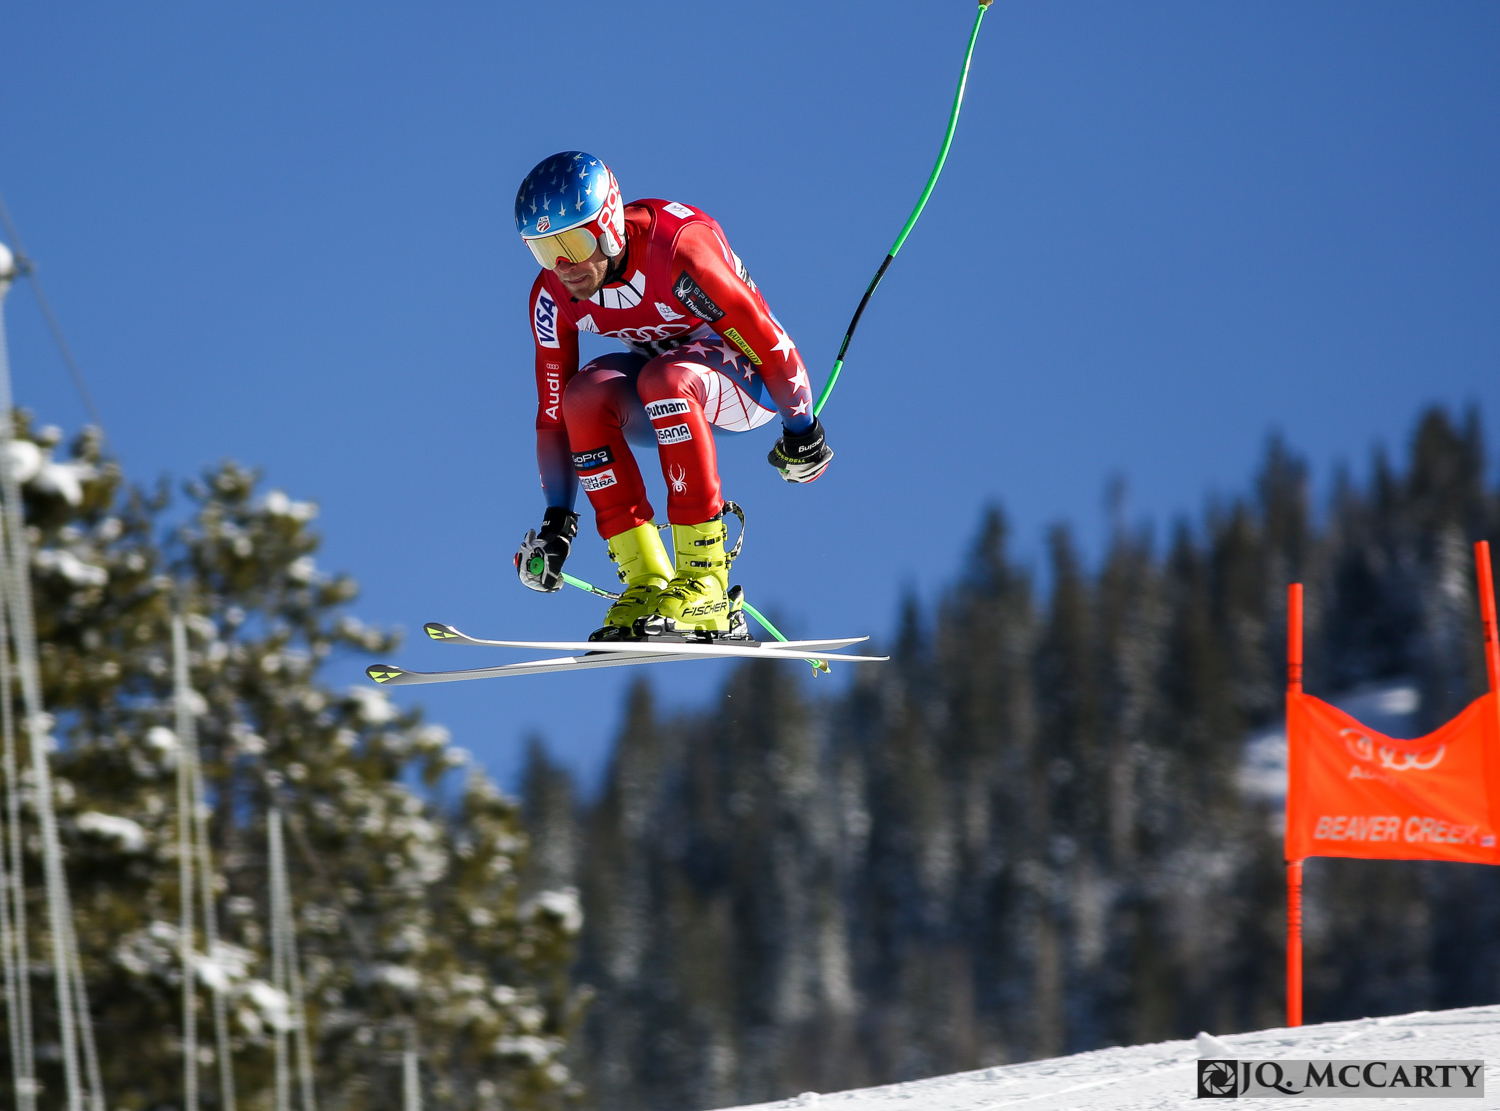 World Cup ski racer Steven Nyman launches off of the Red Tail jump during the first day of downhill training for the Birds of Prey race Wednesday in Beaver Creek.